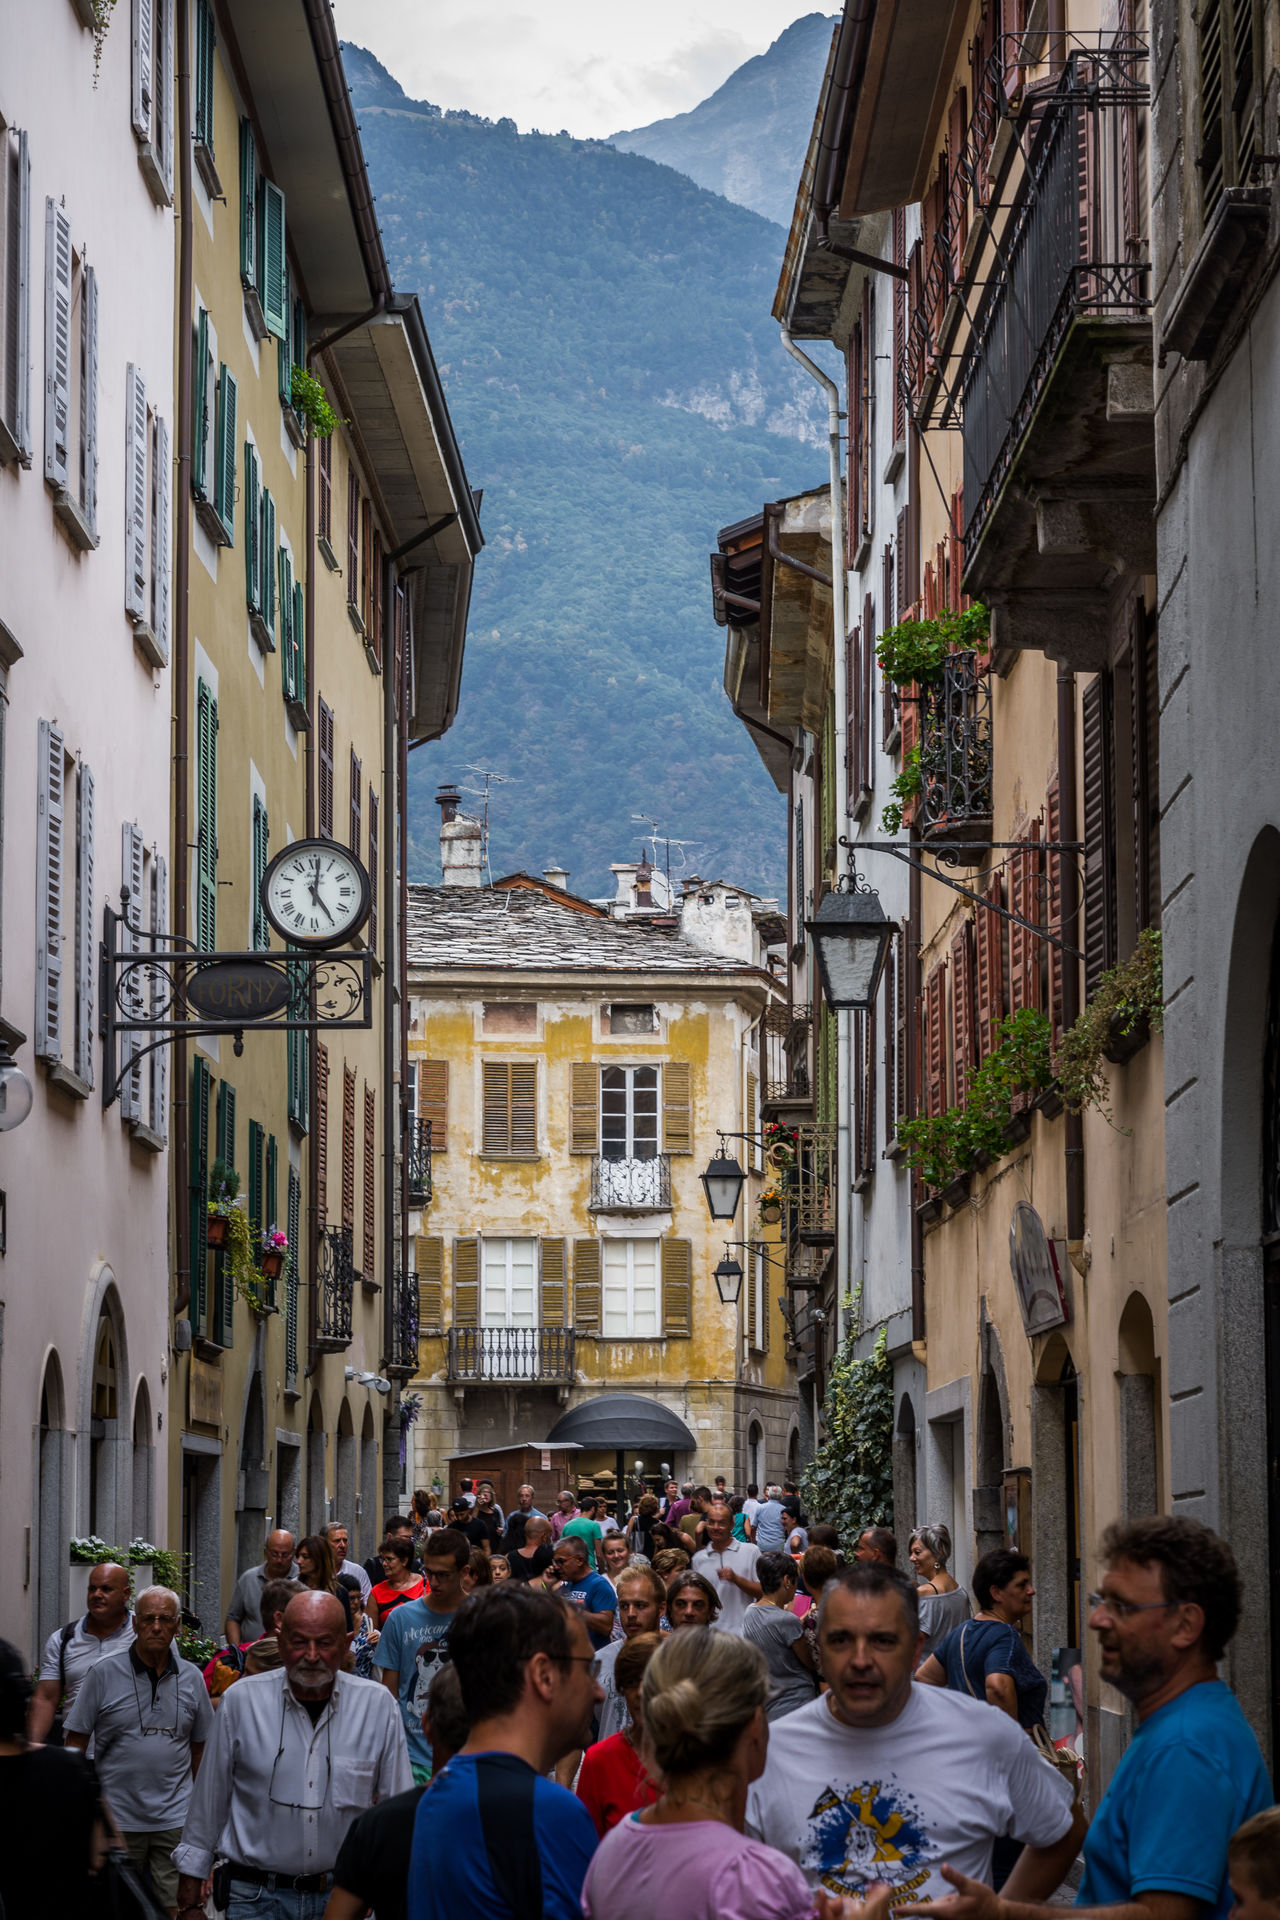 Adult Adults Only Architecture Building Exterior Built Structure Chiavenna City Cloud - Sky Crowd Day Group Of People Human Body Part Italy Large Group Of People Men Outdoors People Sky Street Street Photography Streetphotography Travel Destinations Women